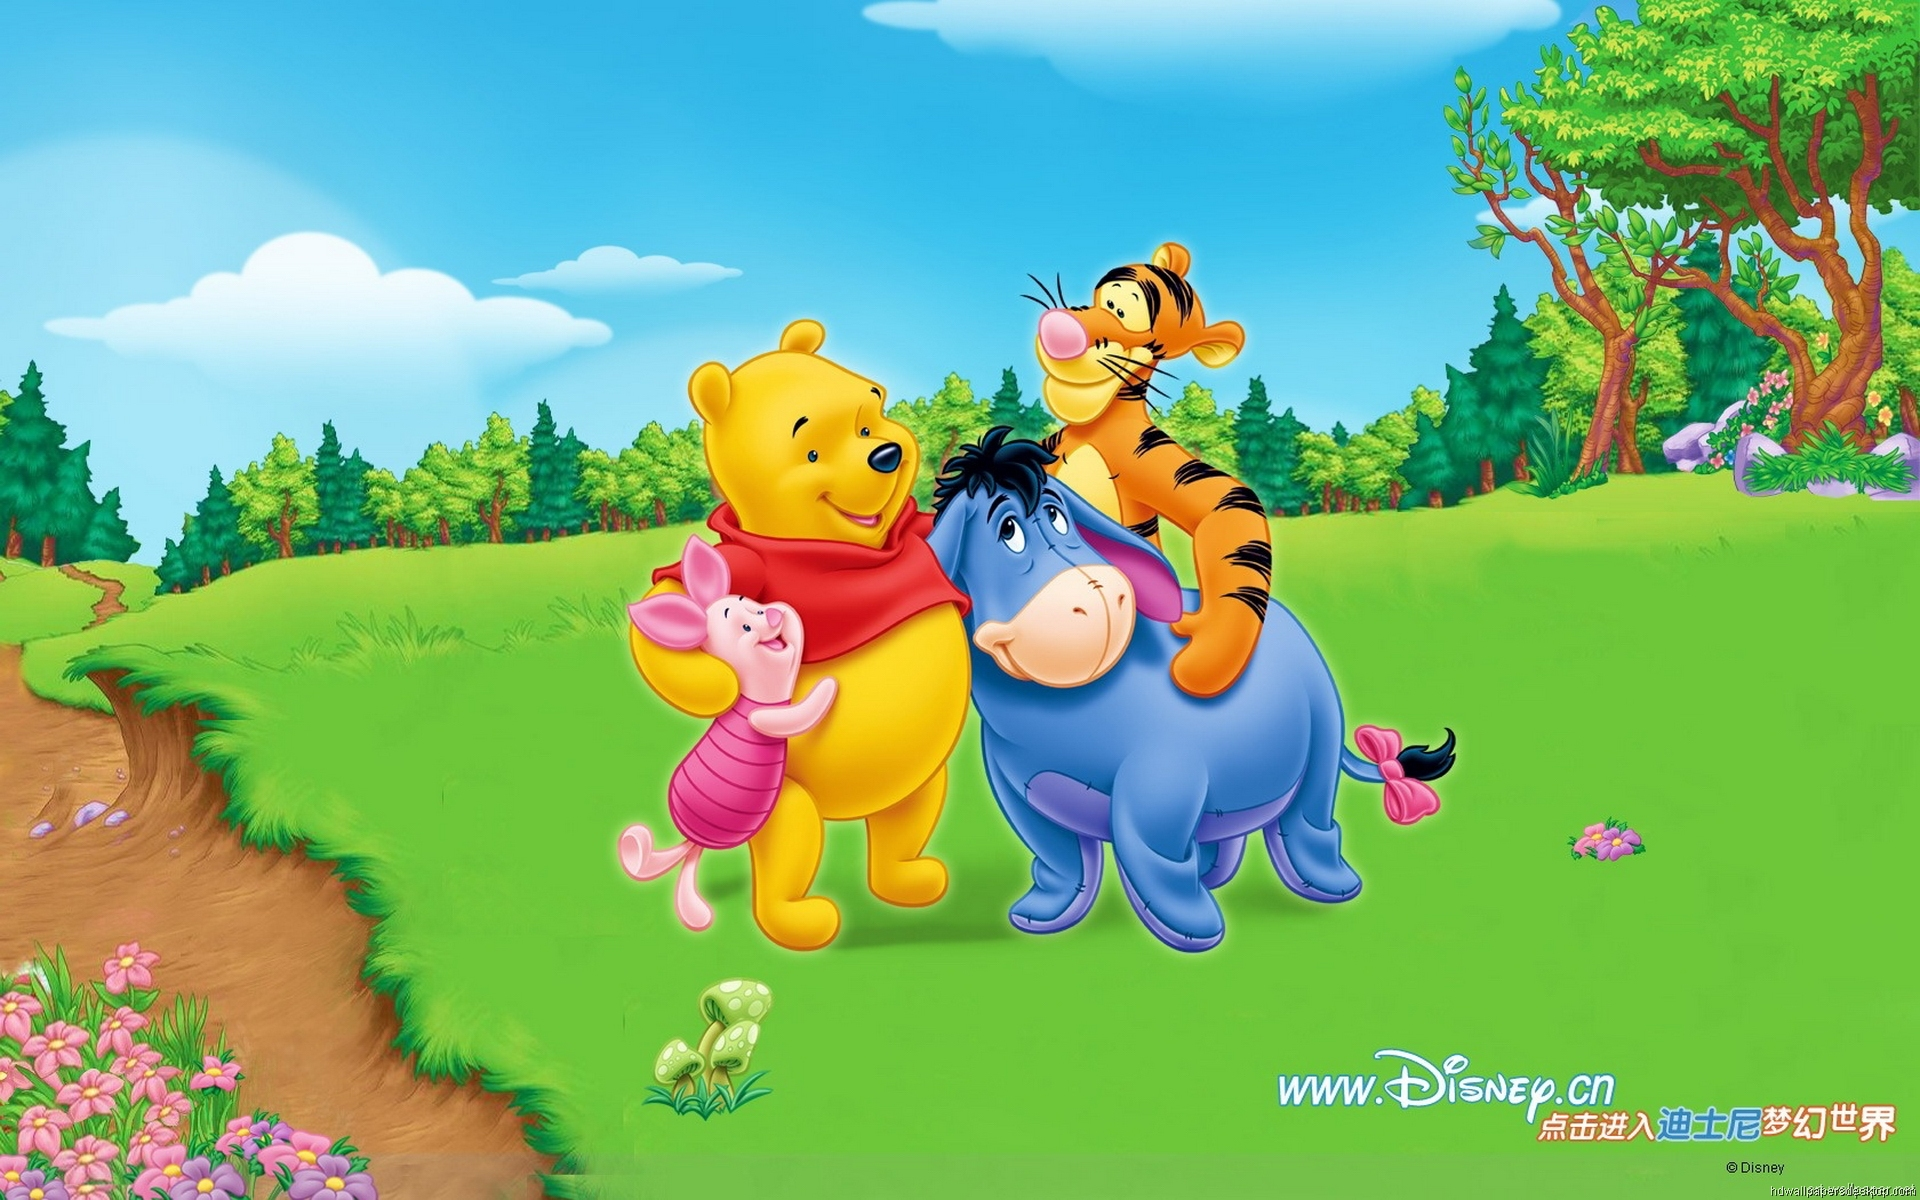 Cute Pooh Bear Wallpapers Walt Disney Winnie The Pooh Wallpaper 9475 Wallpaper